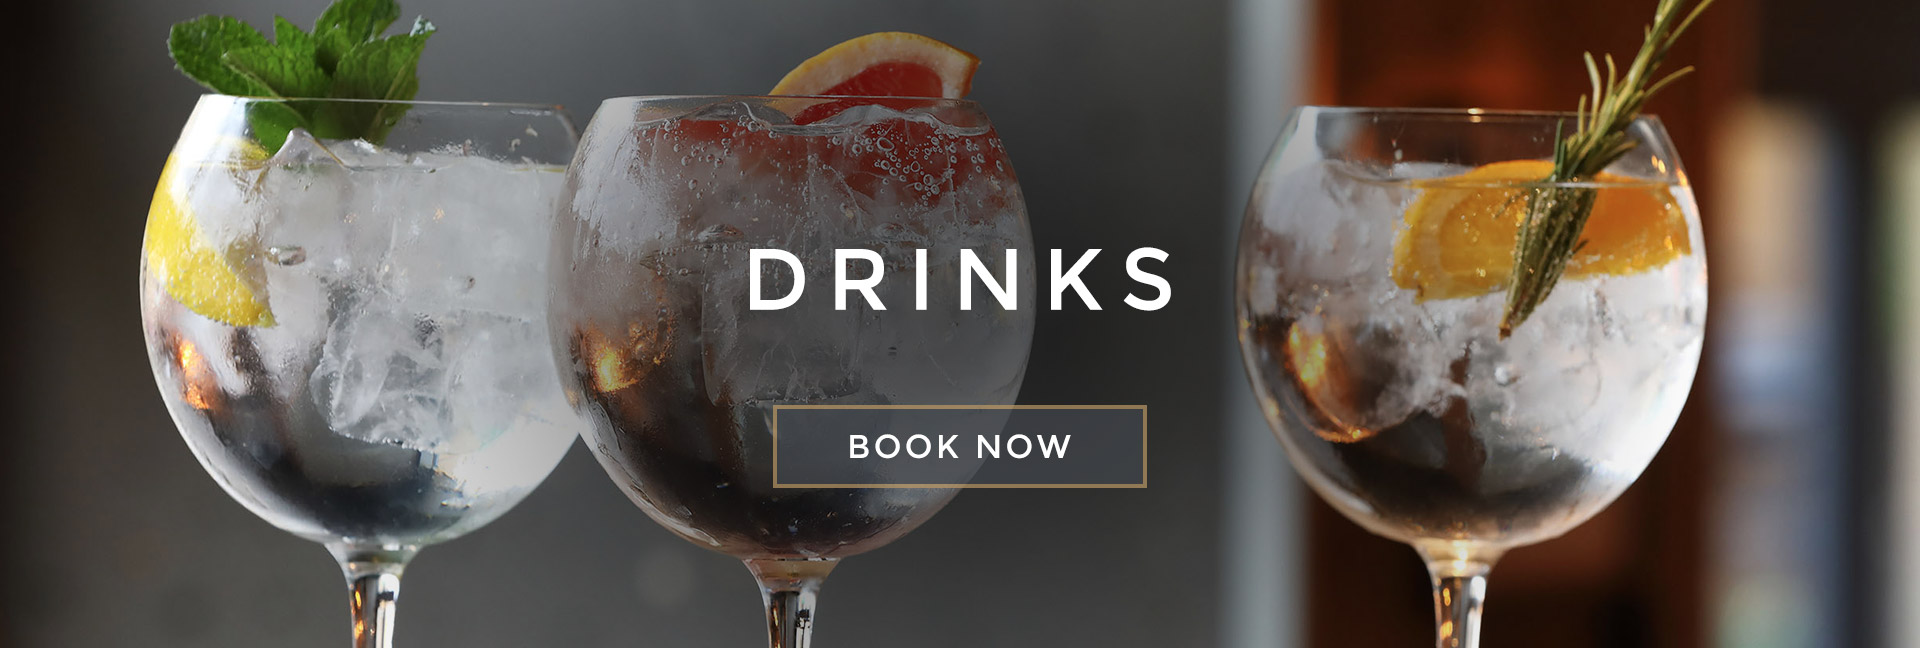 Drinks at All Bar One Nottingham - Book your table